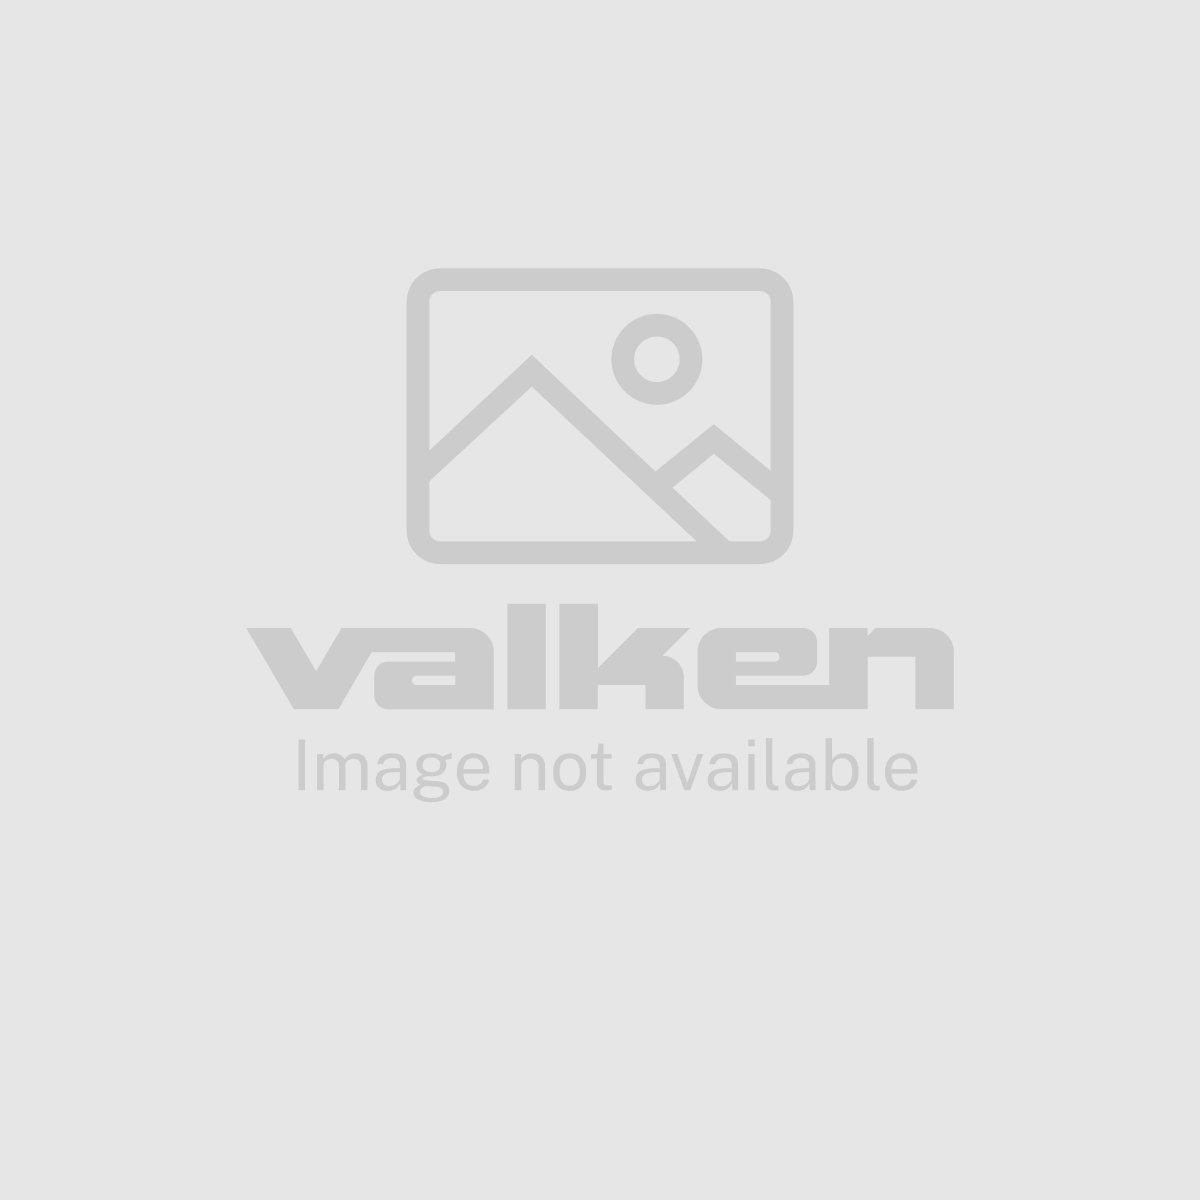 View larger image of Valken ASL Ambi On/Off Switch Set with Screws